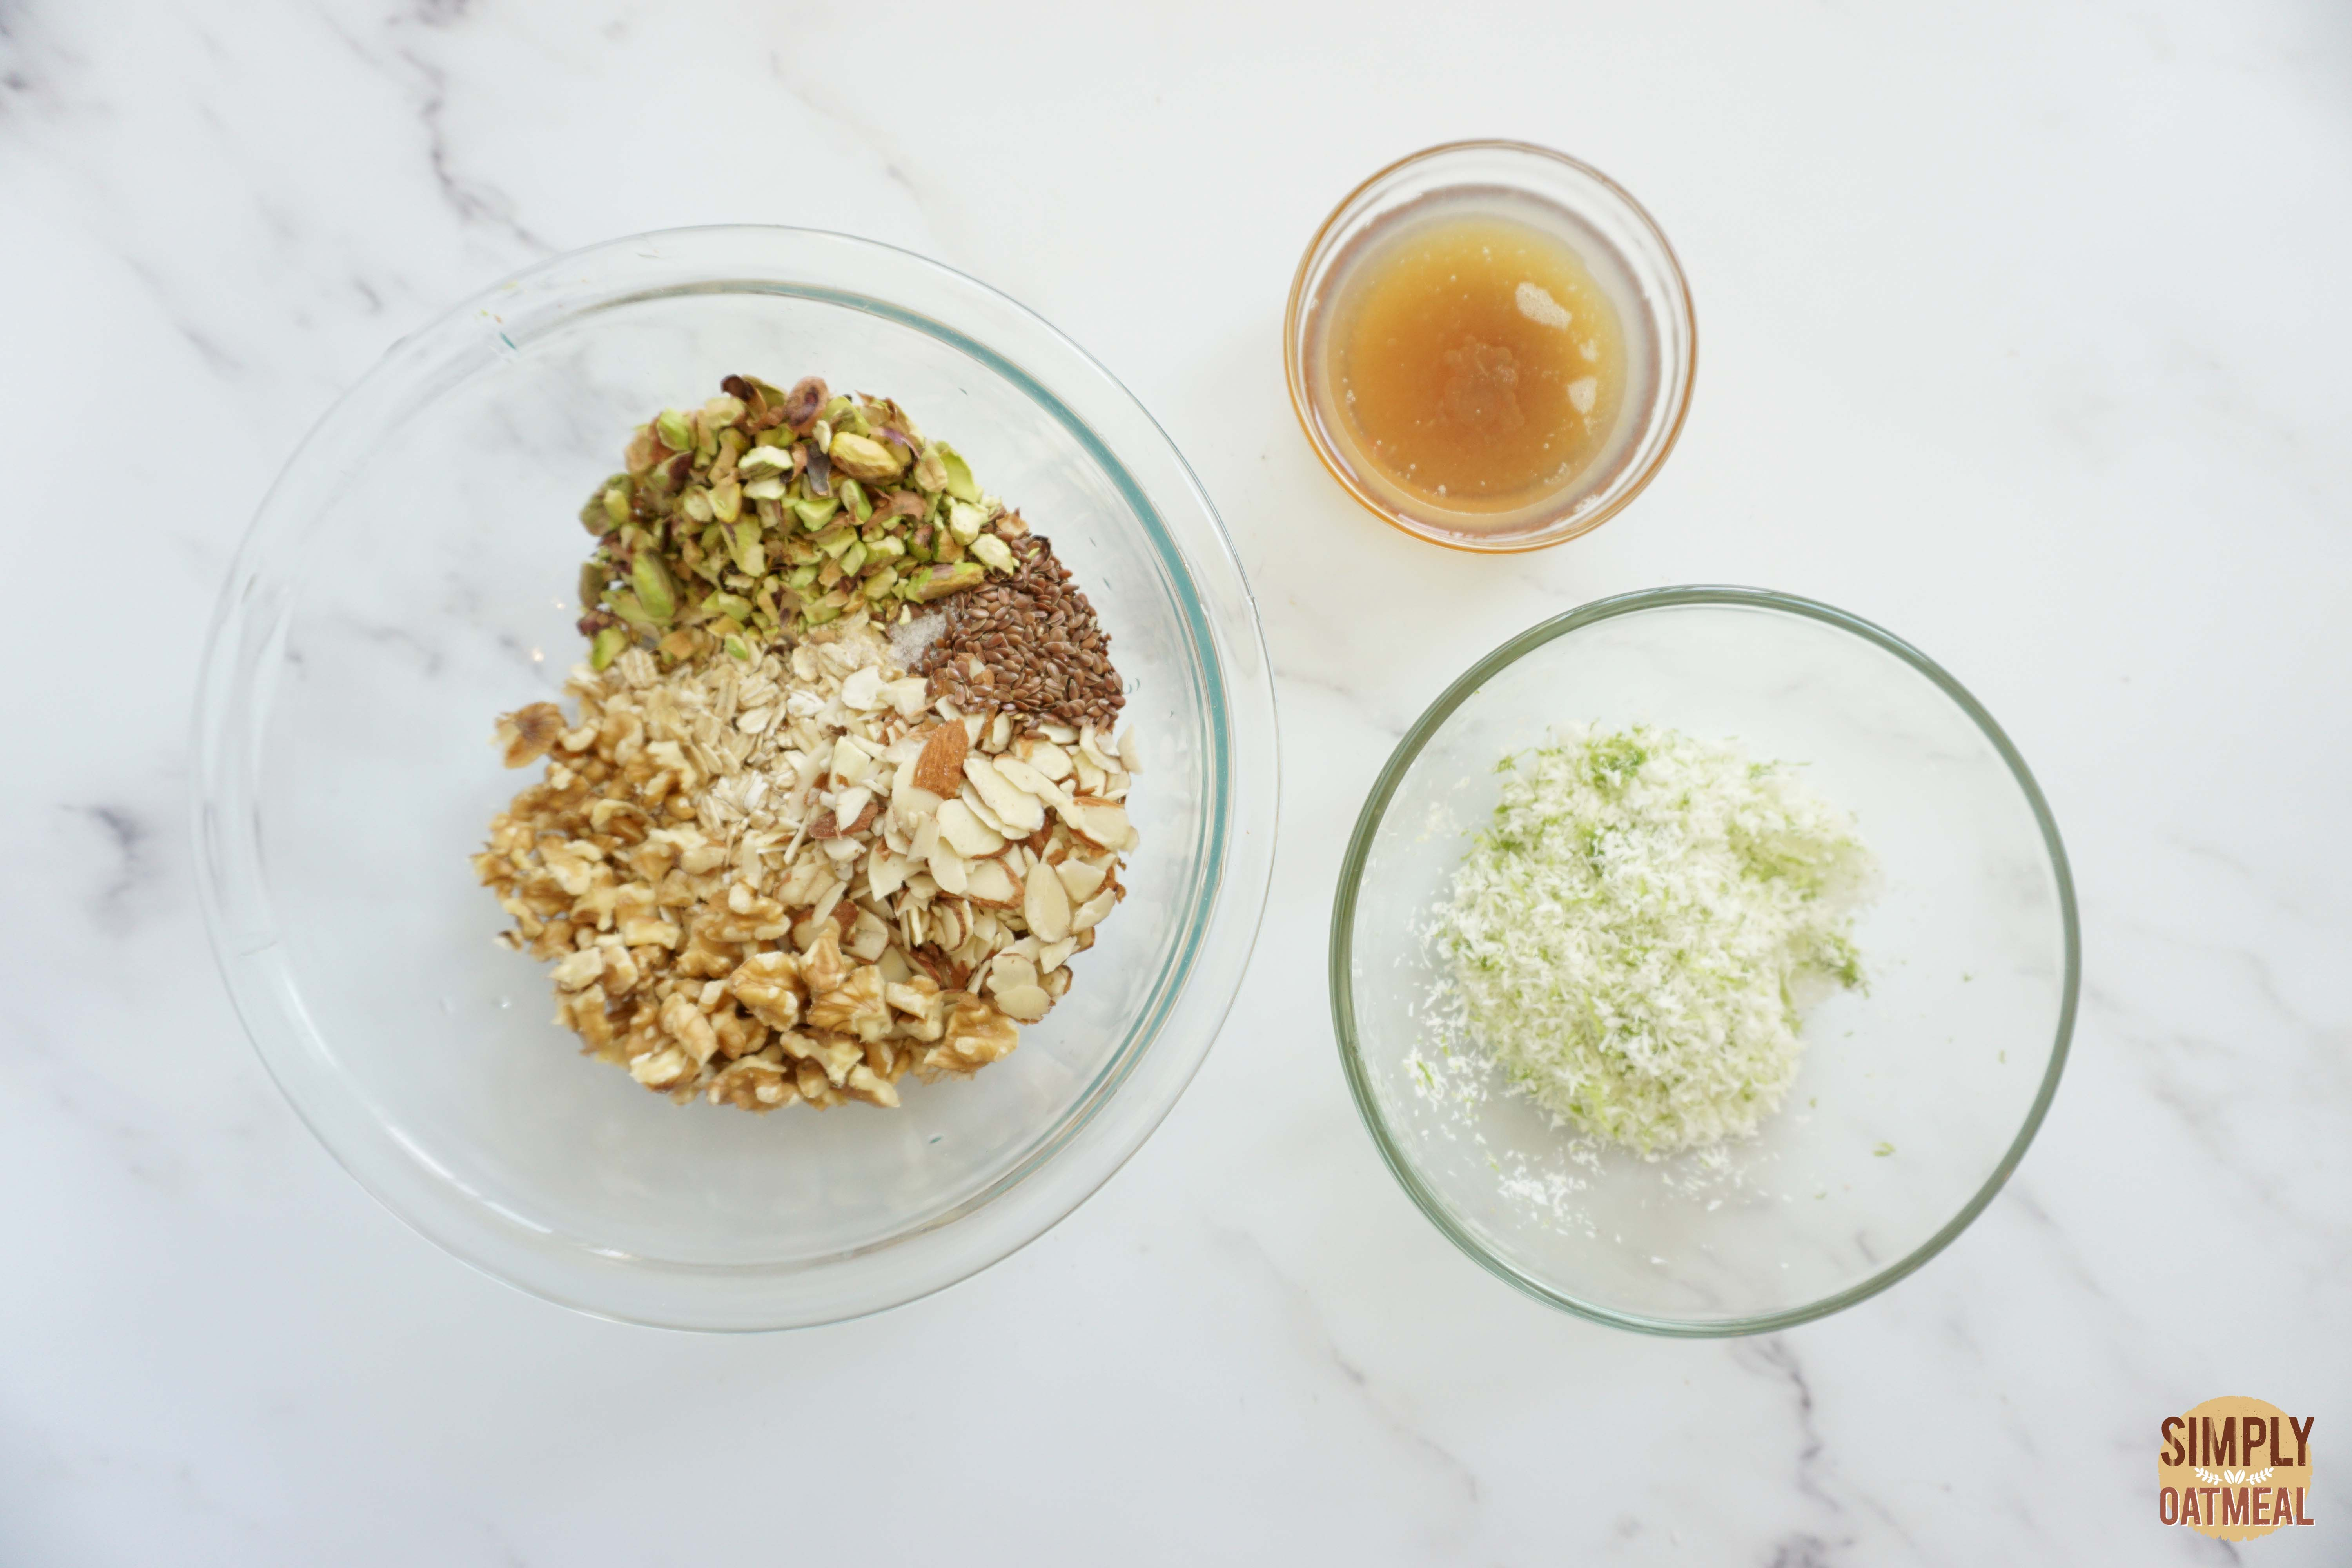 Wet and dry ingredients to make coconut lime pineapple granola